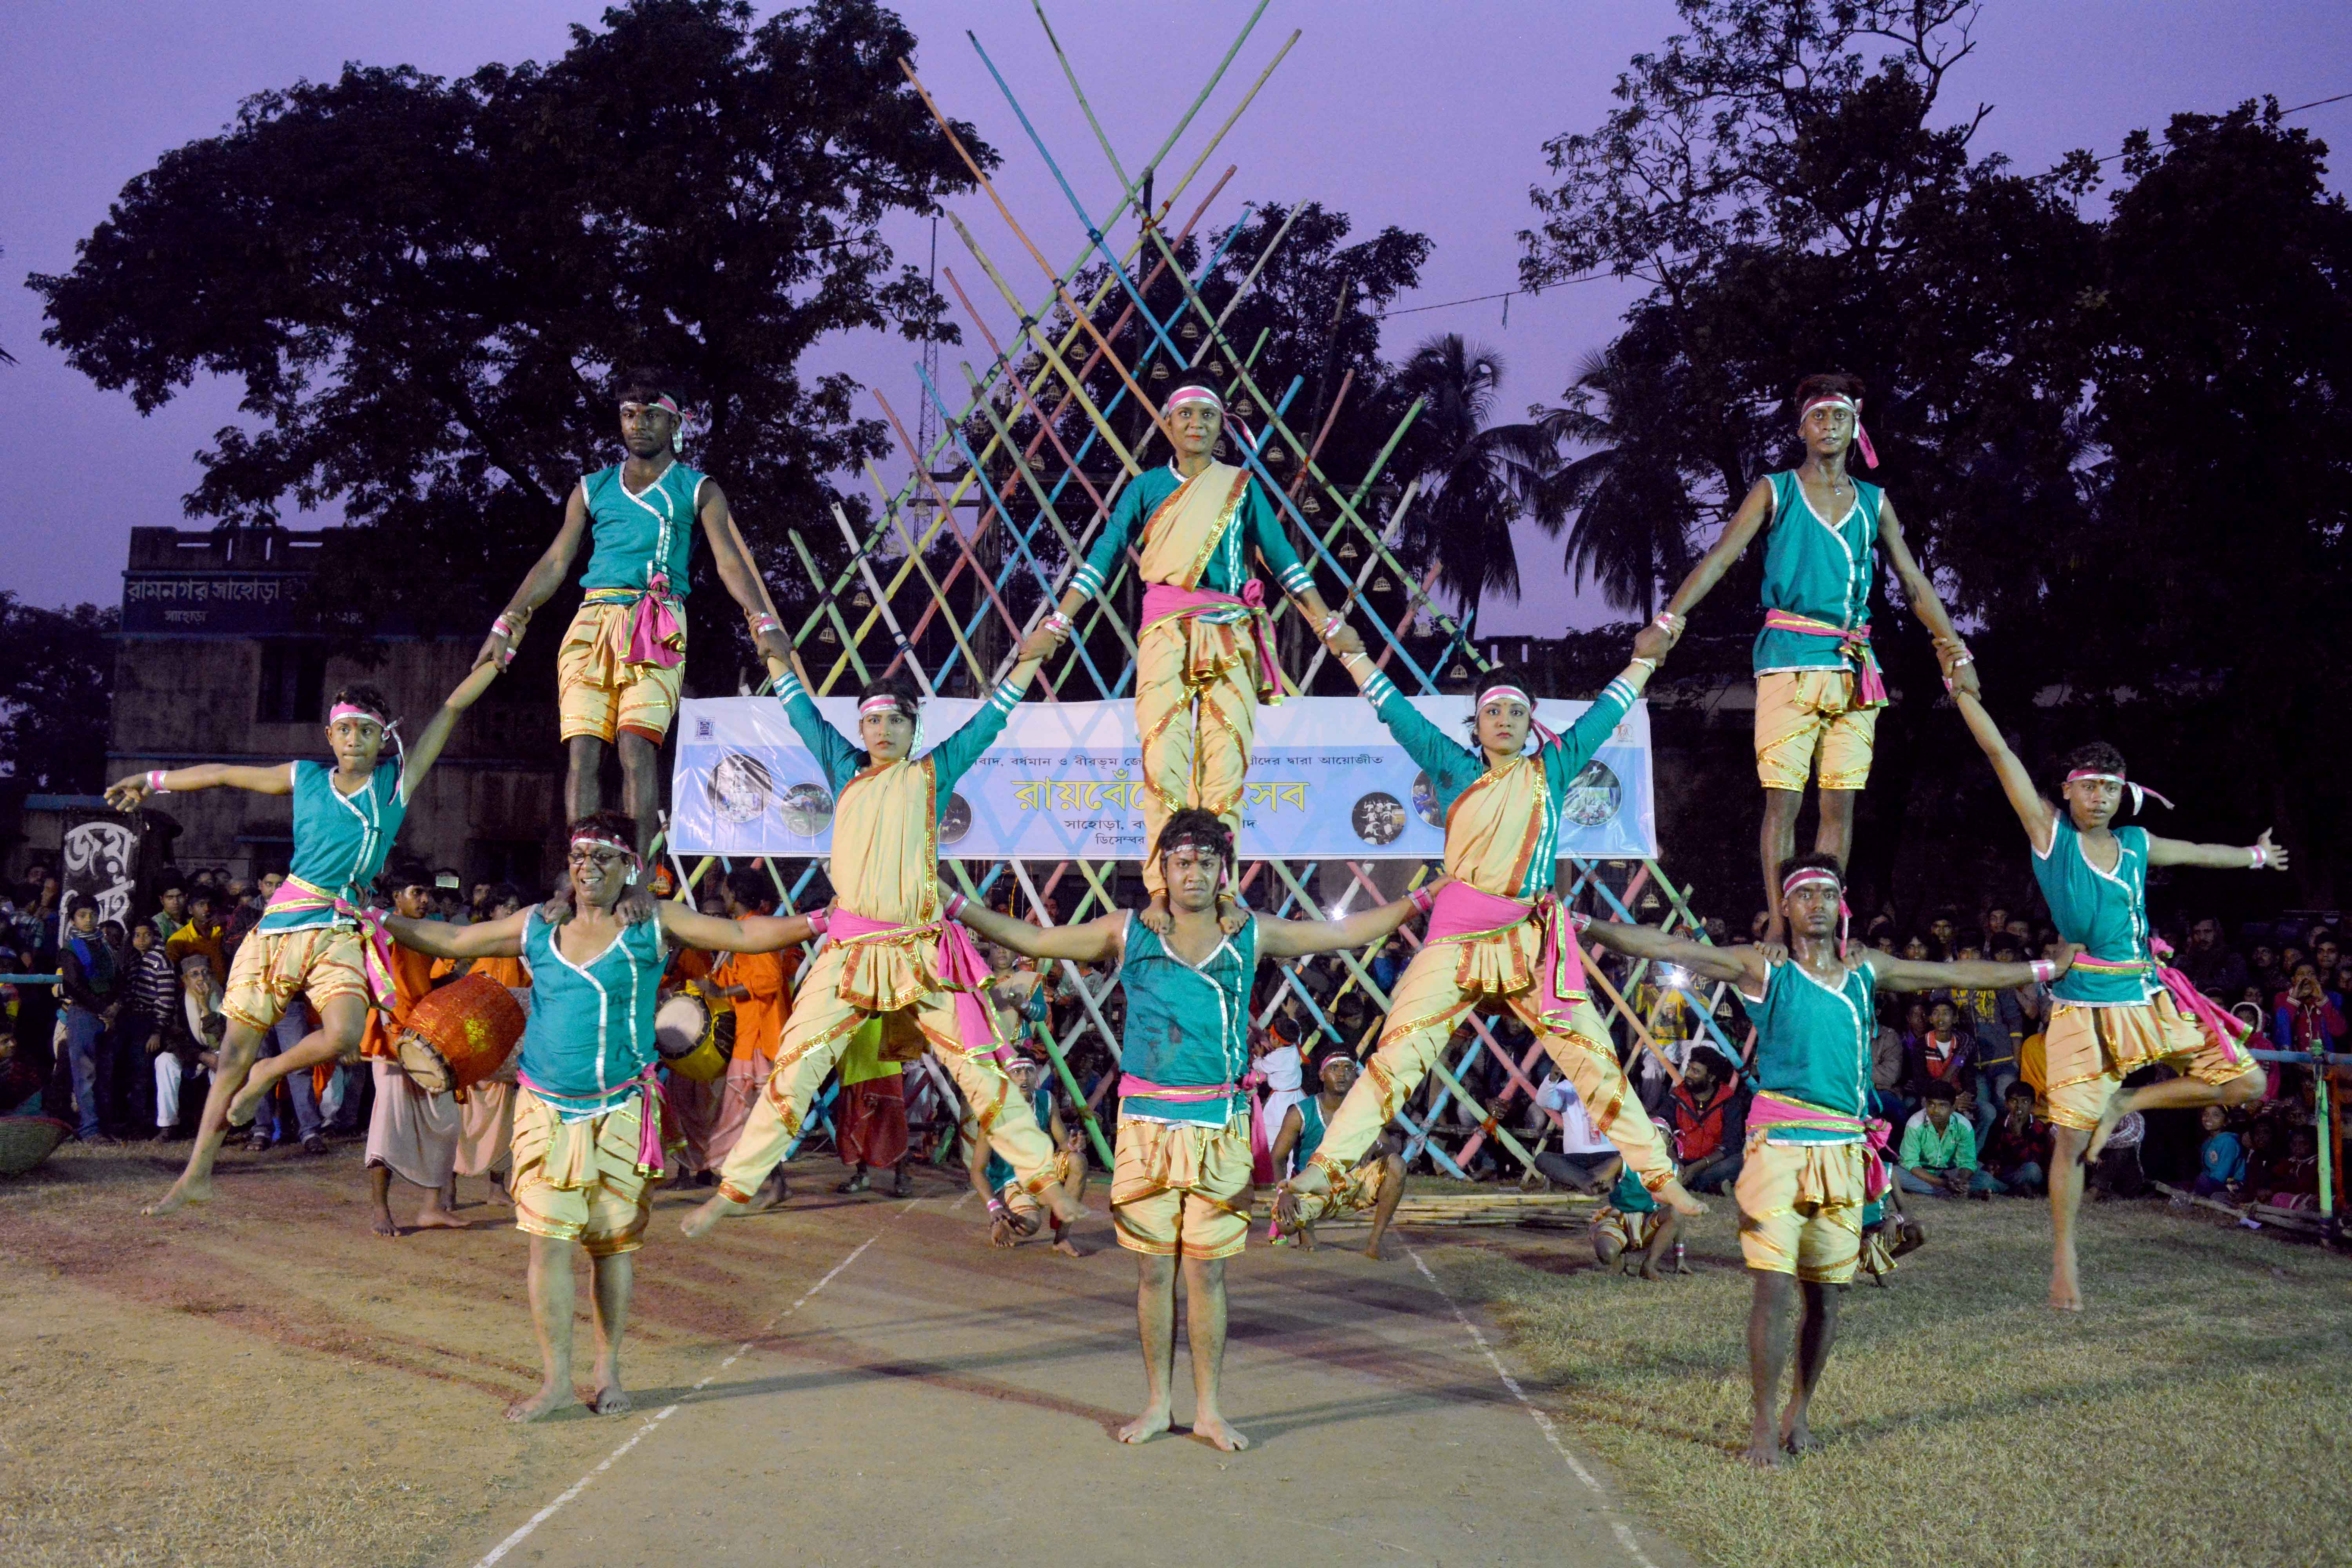 Raibenshe performance at Burwan, Murshidabad